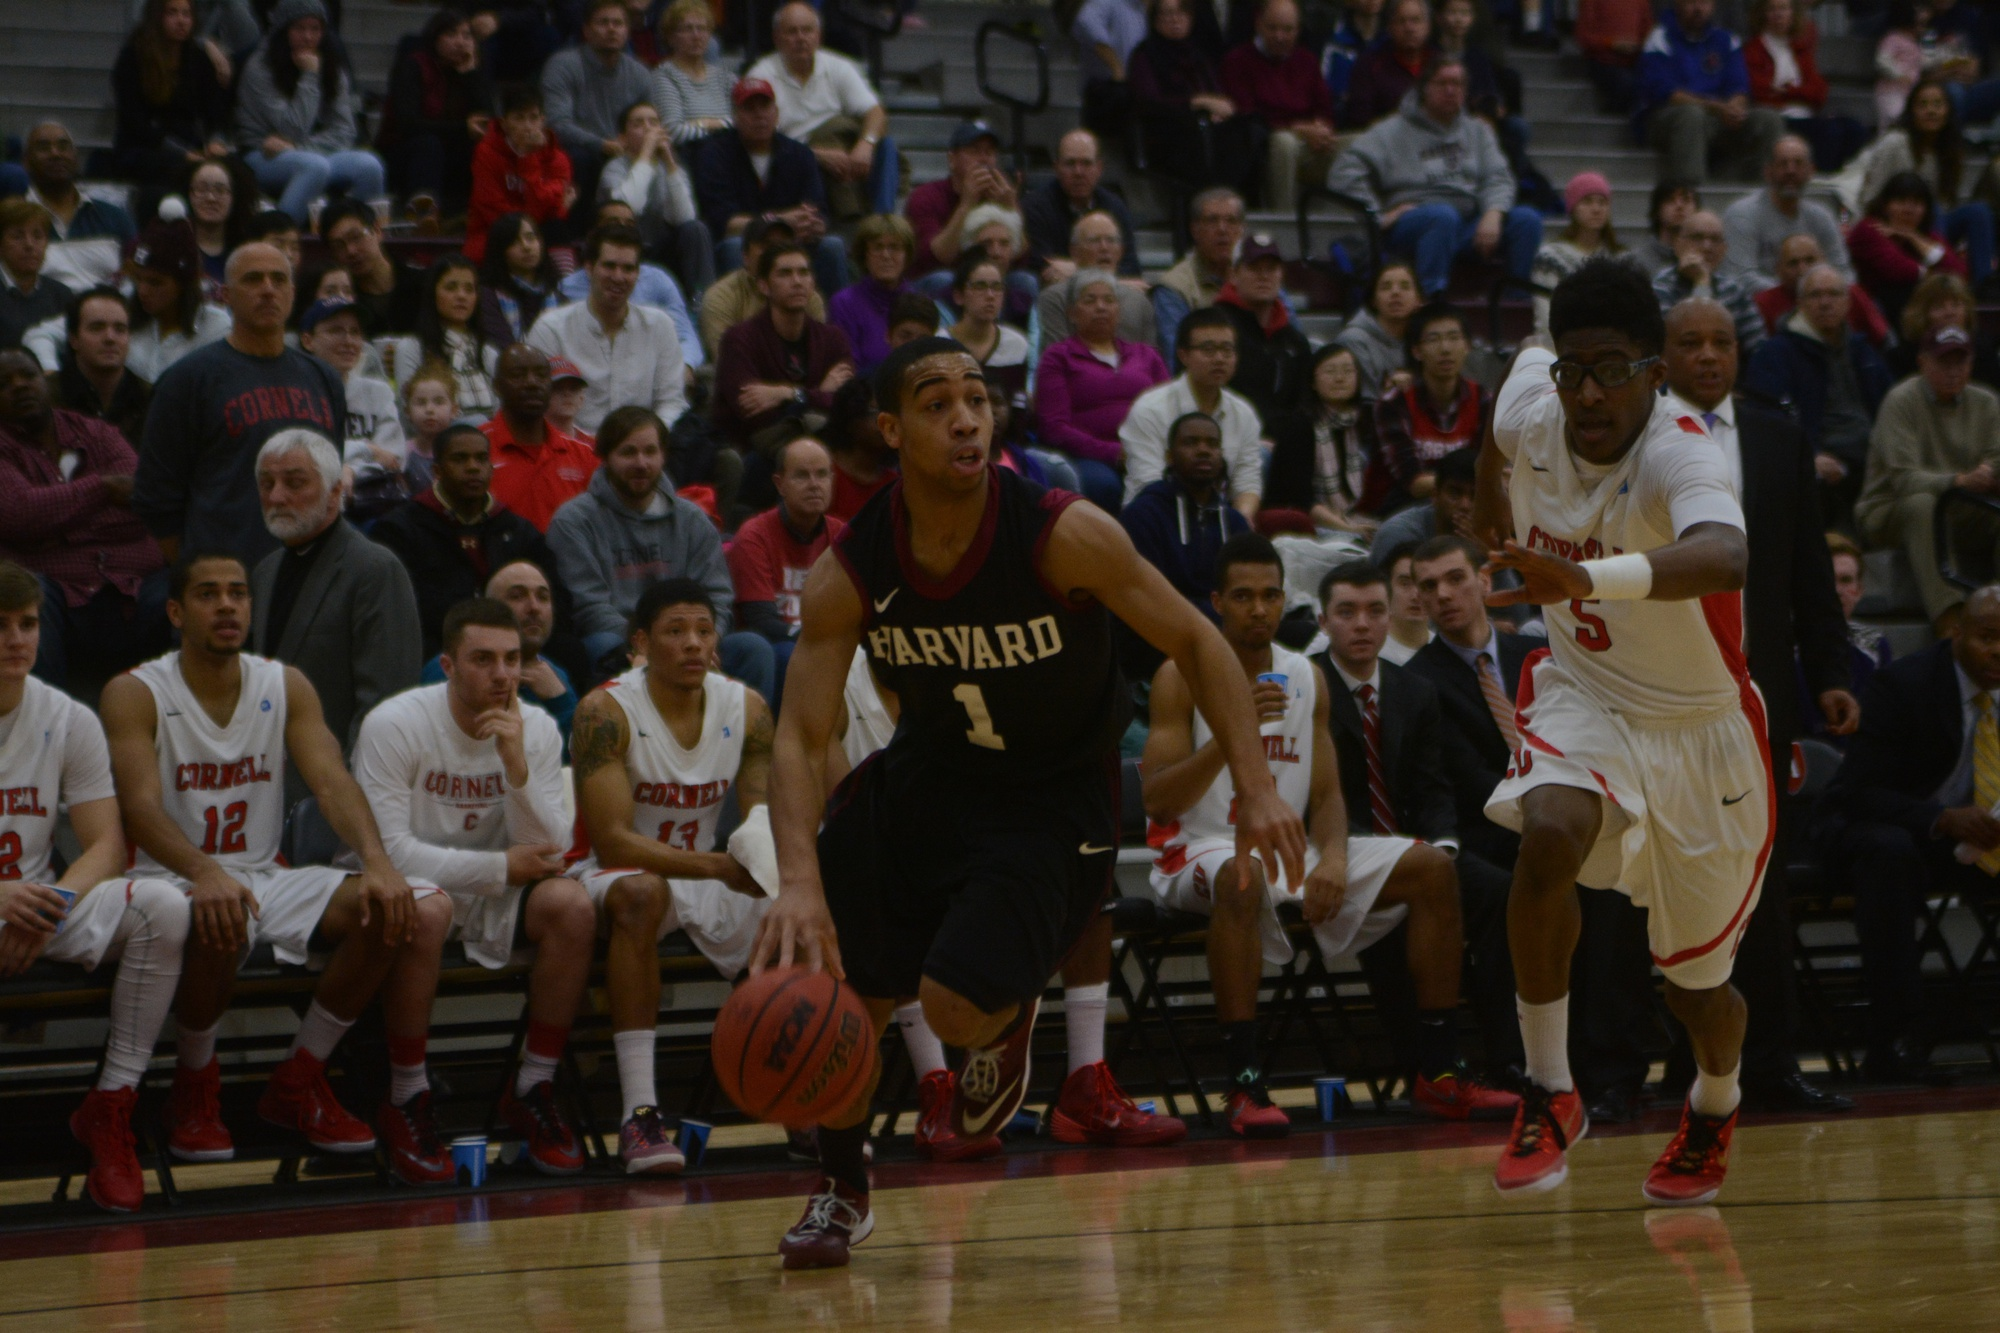 Junior co-captain Siyani Chambers says that the Harvard men's basketball team has focused on closing out games in preparation for this weekend, when the Crimson hosts Princeton and Penn. Harvard edged the Tigers earlier this year on the road before routing the Quakers at the Palestra